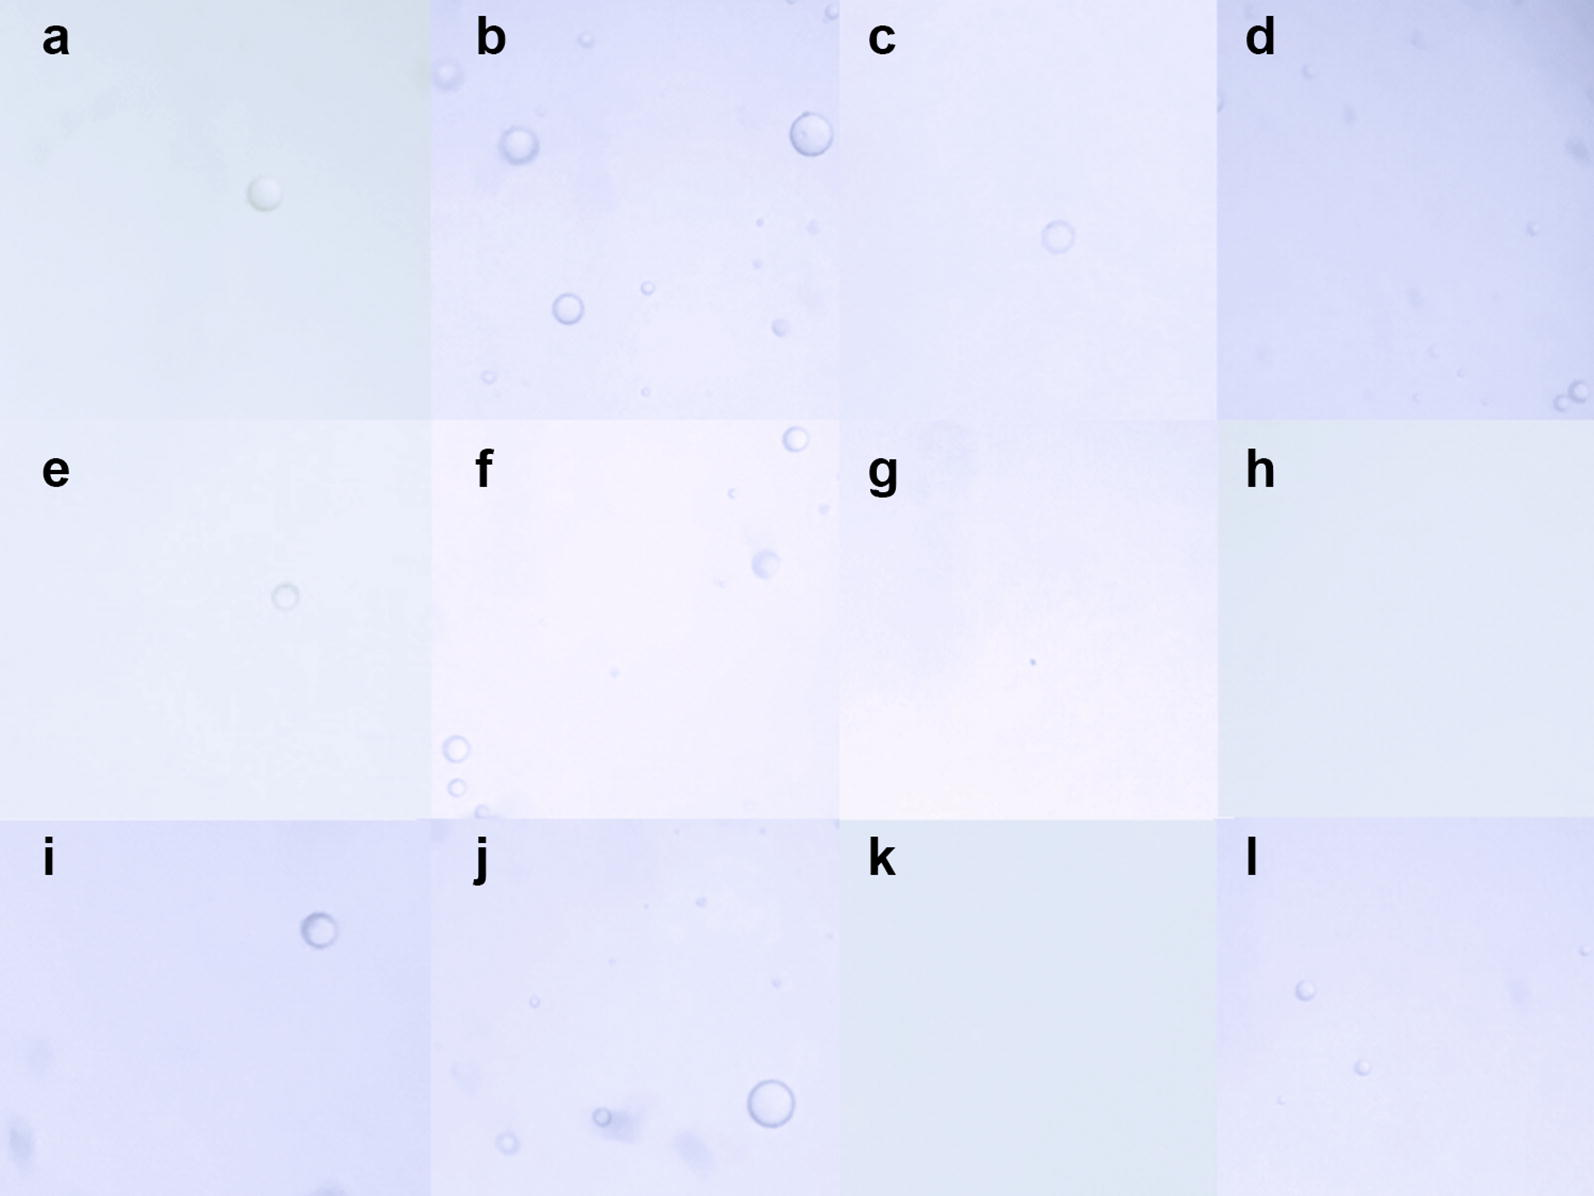 Images from syringes 1 [Saldanha Rodrigues (SR) 1-mL insulin syringe, a – d ], 2 [Becton–Dickinson (BD) Plastipak 1-mL insulin syringe, e – h ], and 3 [BD <t>Safetyglide</t> insulin syringe, i – l ]. In syringe 1, oil droplets are seen in all groups: a Isolated silicone oil droplet in a positive control without agitation (group 1). b Multiple silicone oil droplets in a positive control with agitation (group 2). c Isolated silicone oil droplet in fluid-only without agitation (group 3). d Multiple silicone oil droplets in fluid-only with agitation (group 4). In syringe 2, no oil is seen in groups 3 and 4: e Positive control without agitation (group 1). f A positive control with agitation (group 2). g Fluid-only without agitation (group 3). h Fluid-only with agitation (group 4). In syringe 3, silicone oil is seen in three groups. i Isolated silicone oil droplet in a positive control without agitation (group 1). j Multiple silicone oil droplets in a positive control with agitation (group 2). k No silicone oil droplet in fluid-only without agitation (group 3). l Four silicone oil droplets in fluid-only with agitation (group 4)